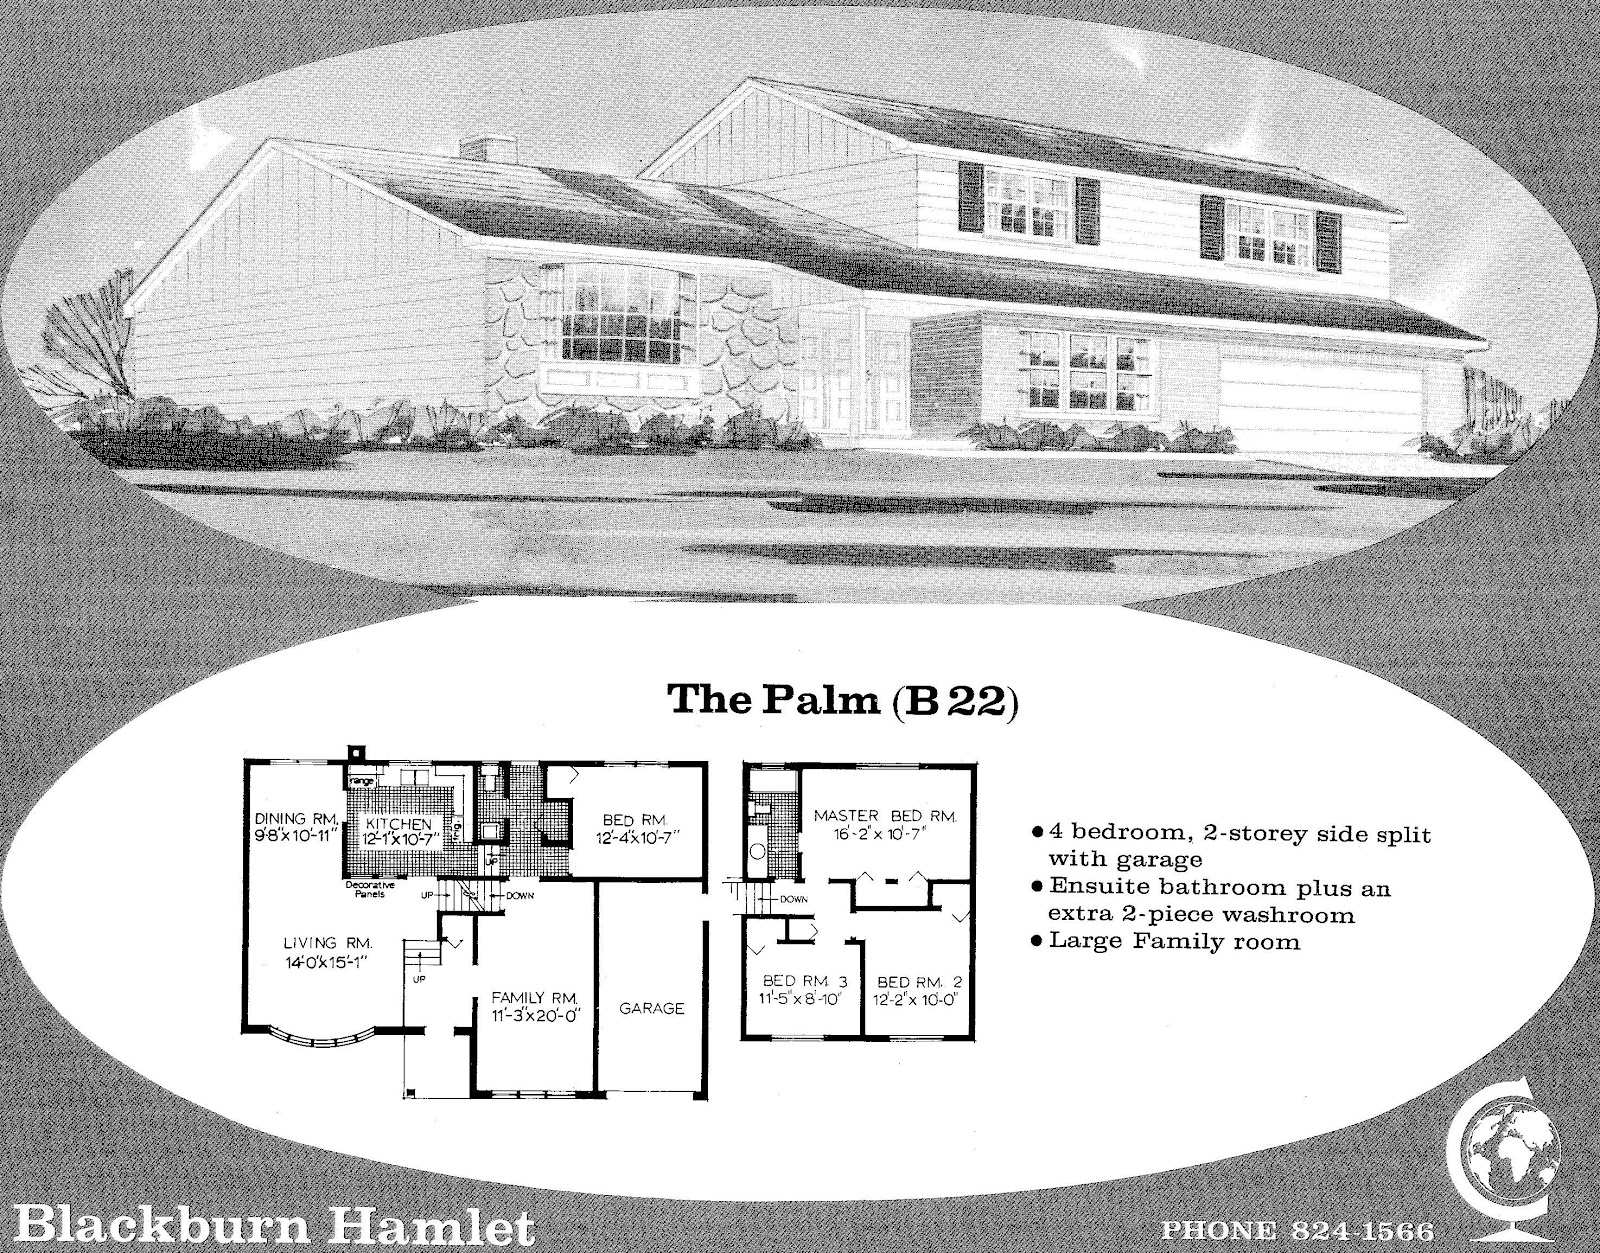 Mid century modern and 1970s era ottawa favourite plans blackburn this plan has a uniquely located family room facing the front which does allow for a bedroom on the ground level behind the garage which is where the malvernweather Images